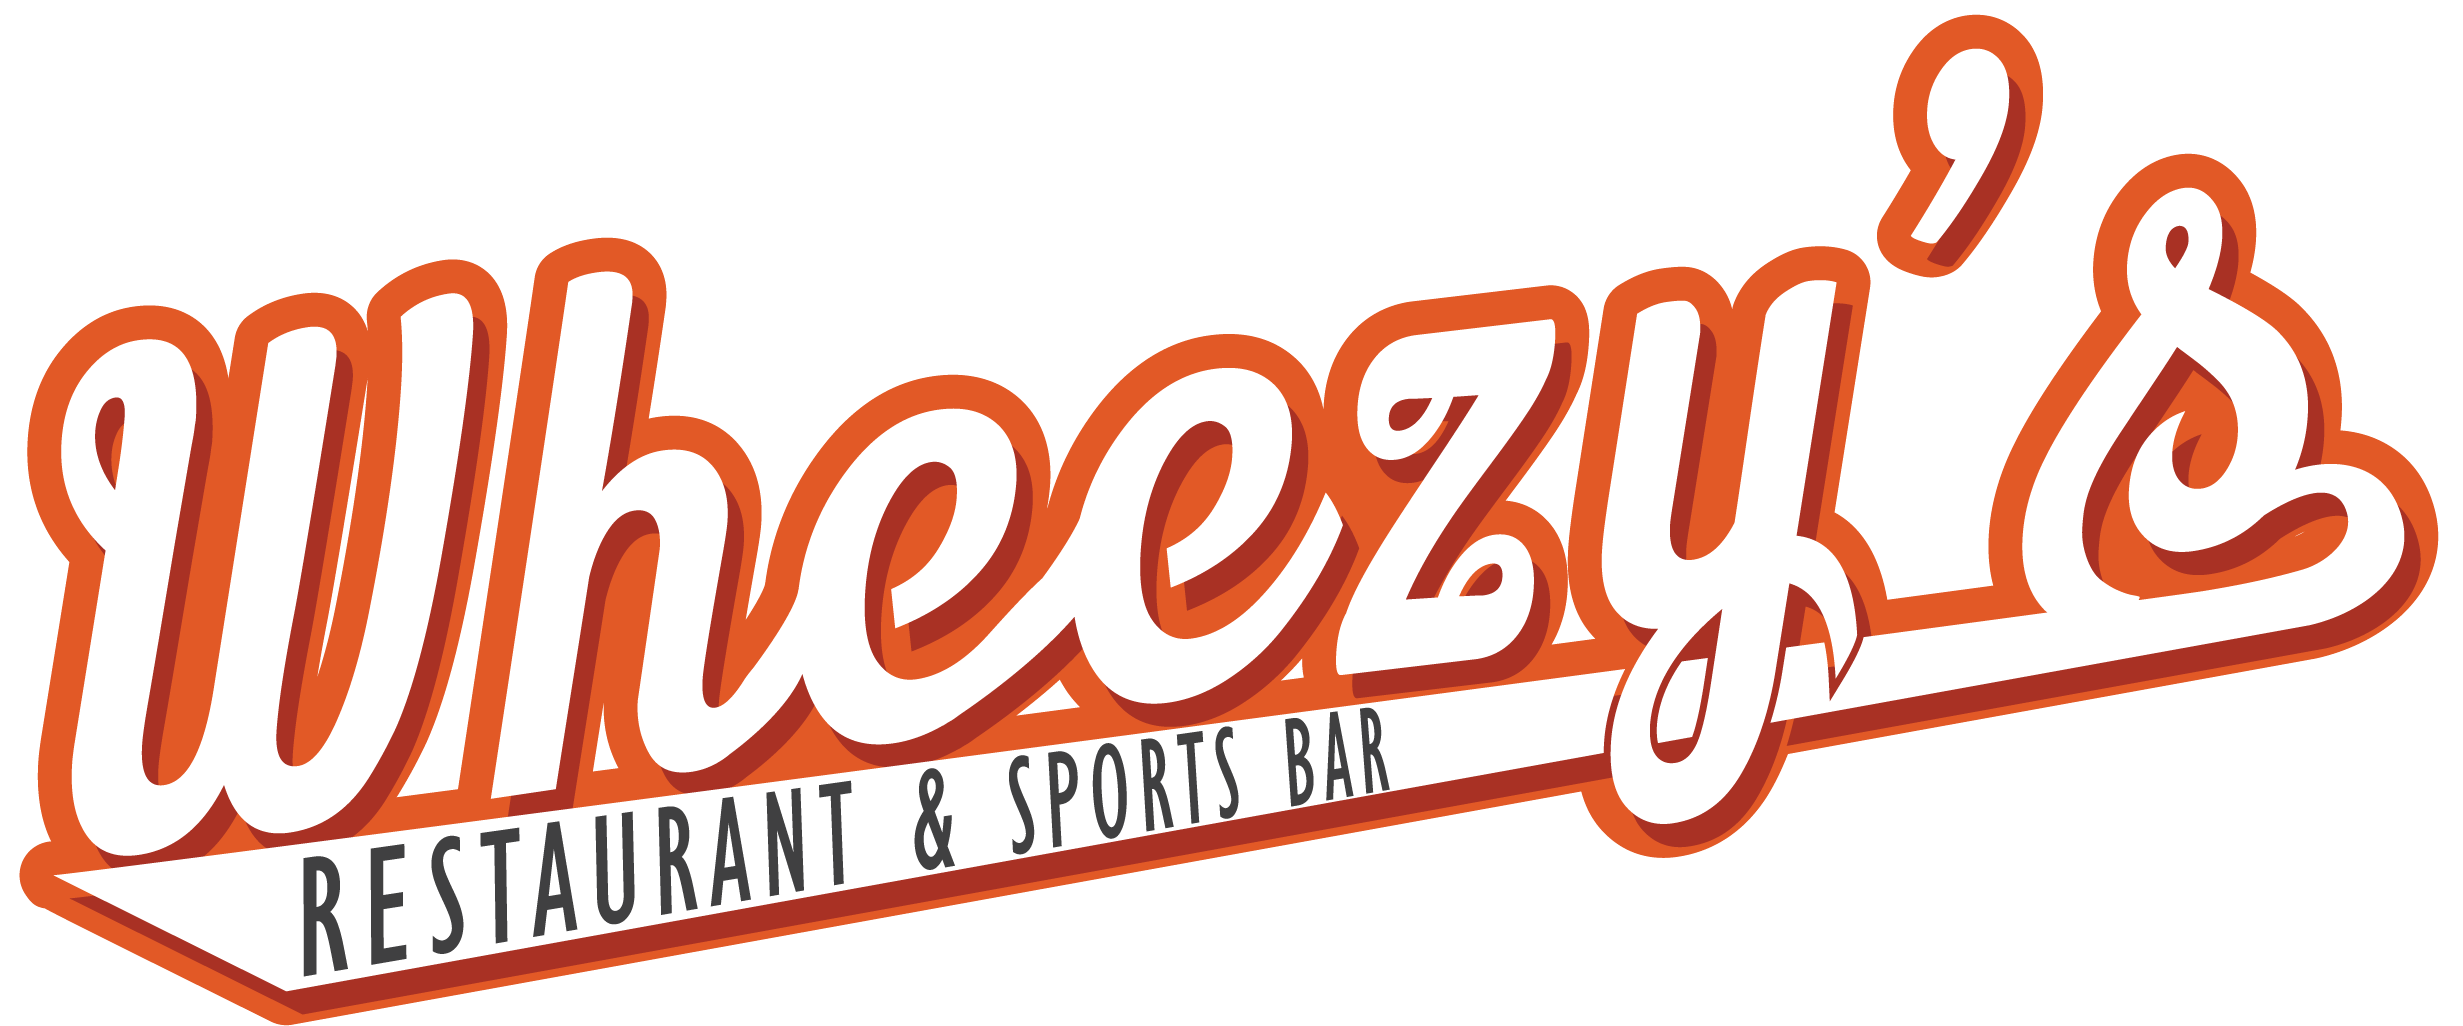 Wheezy's Restaurant and Bar